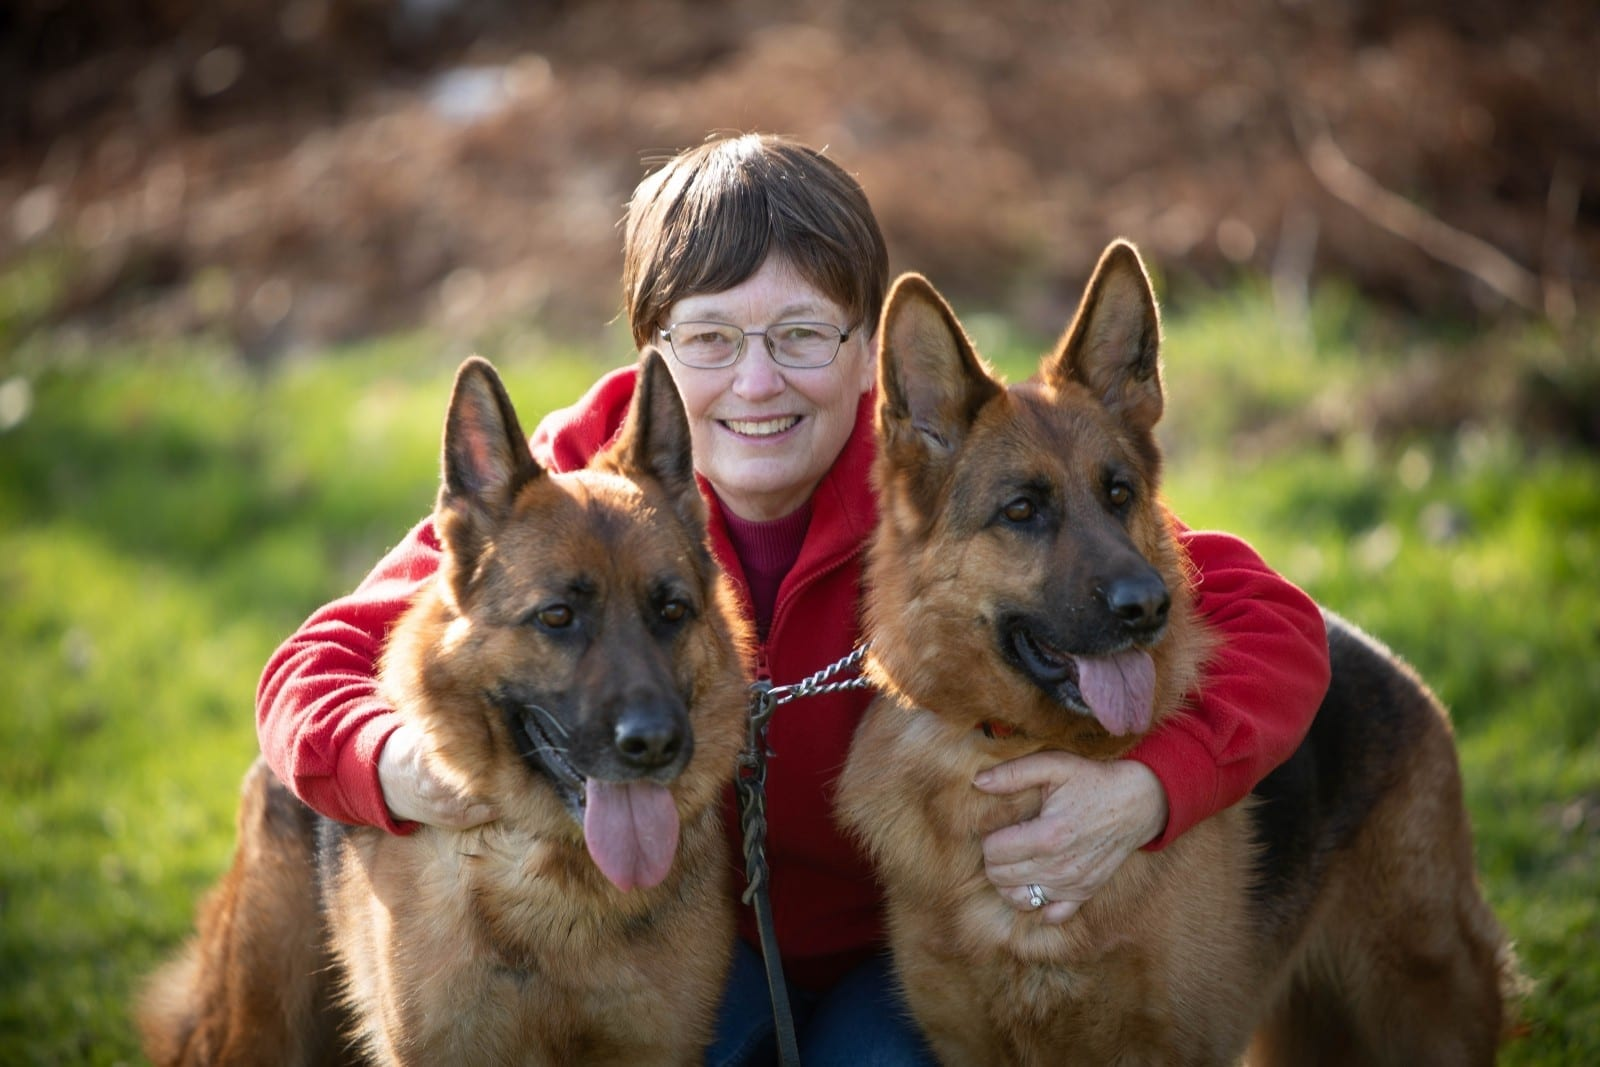 'My Dogs Saved My Life' - Dog Lover Owes Her Life To Her Two German Shepherds - After They Detected Breast CANCER